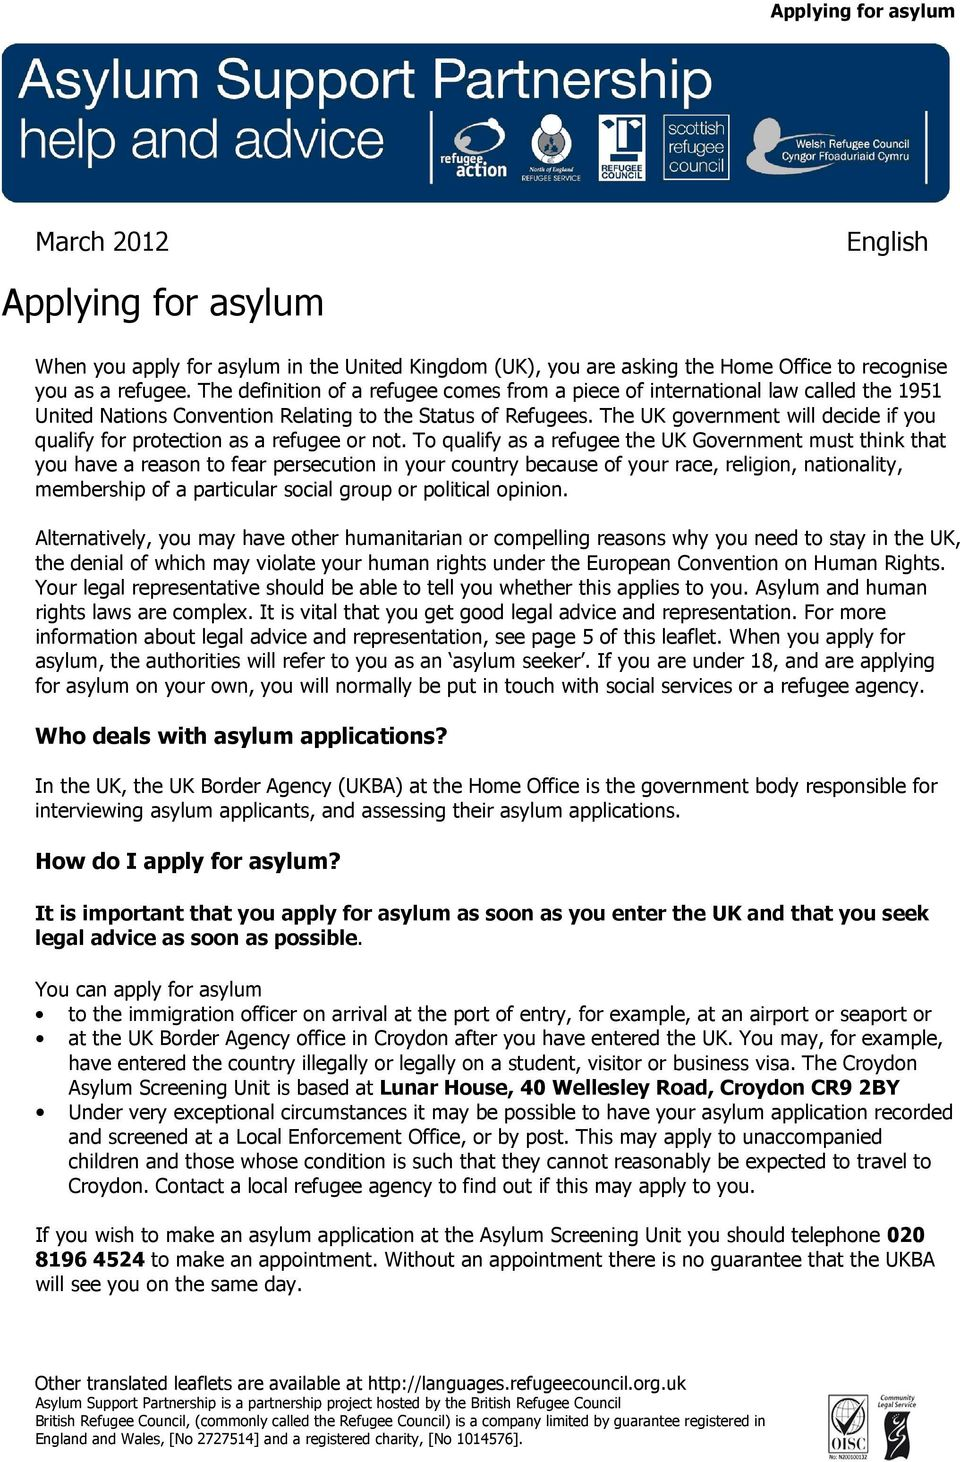 The UK government will decide if you qualify for protection as a refugee or not.